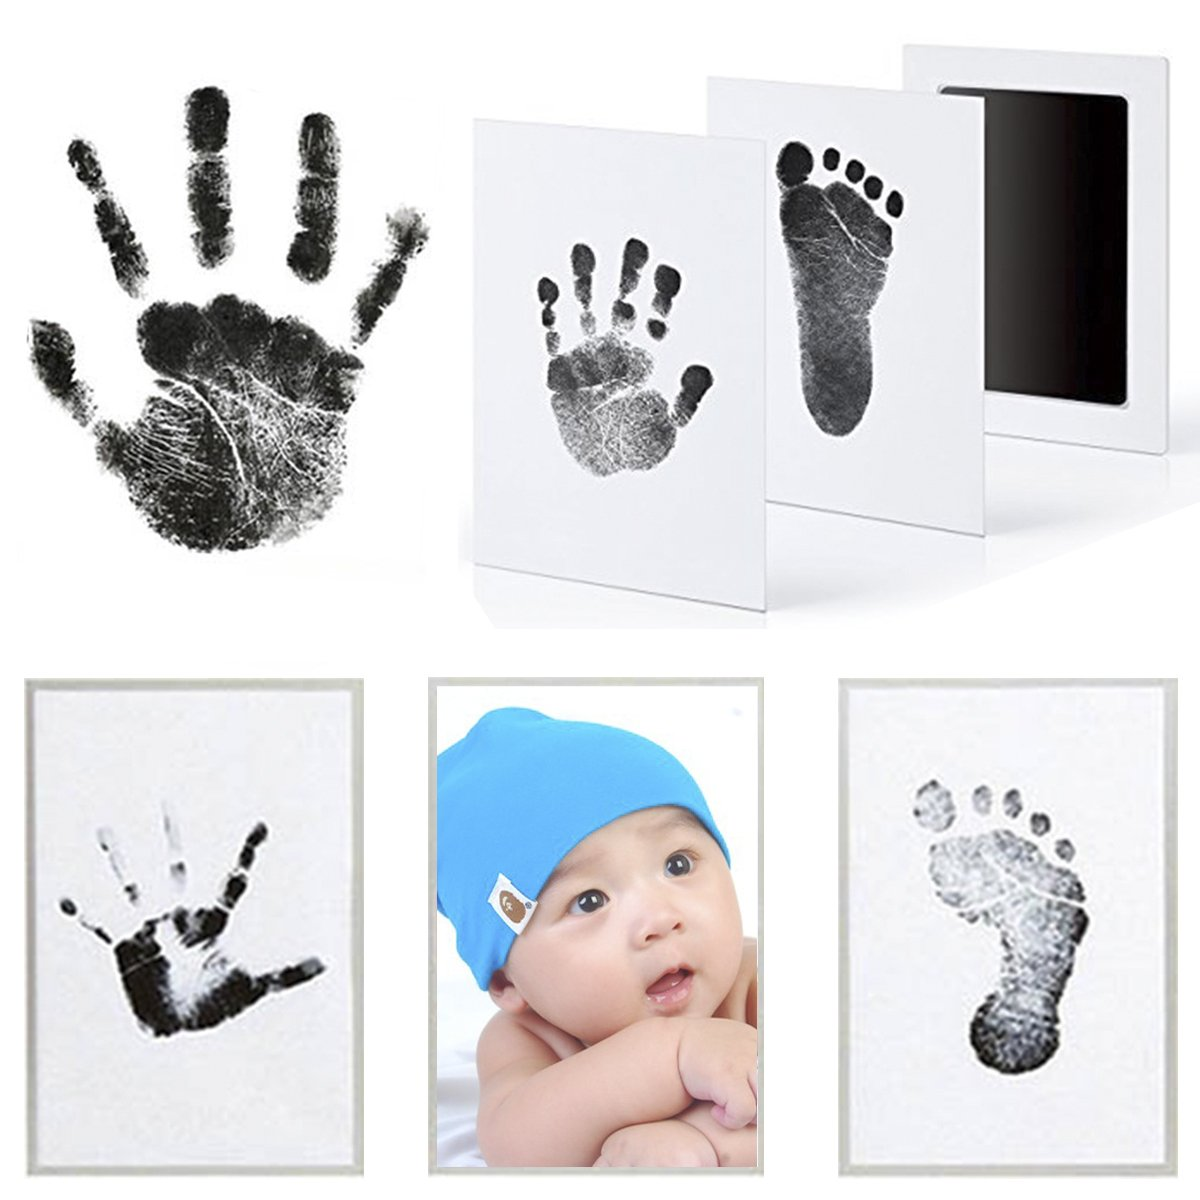 Mcree 3 Pcs Baby Ink Pad for Baby Footprints Hand Prints and Fingerprints Kit with 3 Extra Large Ink Pads and 6 Imprint Cards Perfect Keep Baby Memory Baby Shower Gift (Black) by Mcree